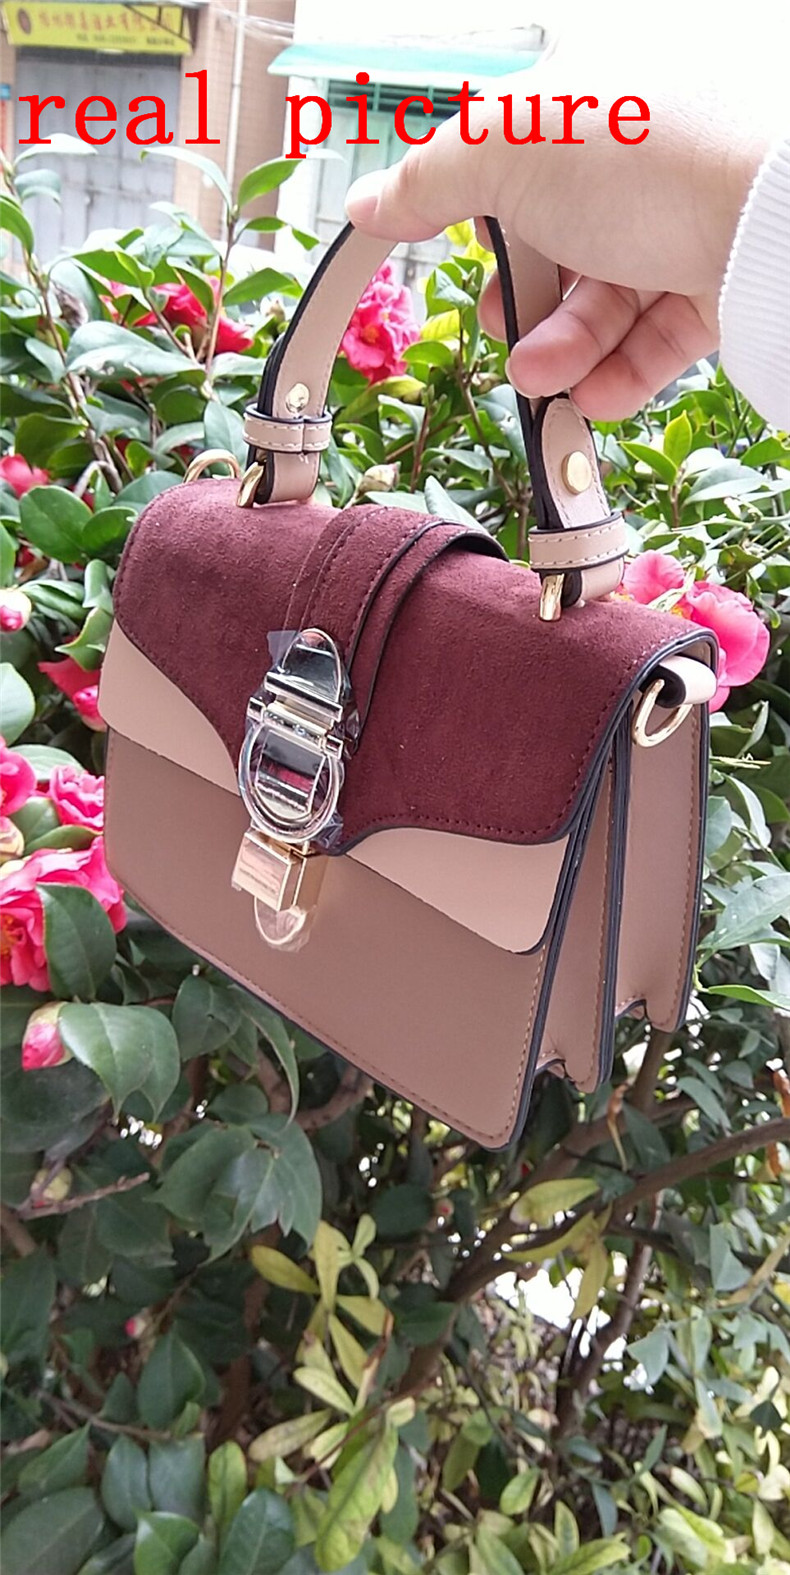 HTB1jMT0d2WG3KVjSZFPq6xaiXXaO - New High Quality Women Handbags Bag  Bags Famous  Women Bags Ladies Sac A Main Shoulder Messenger Bags Flap